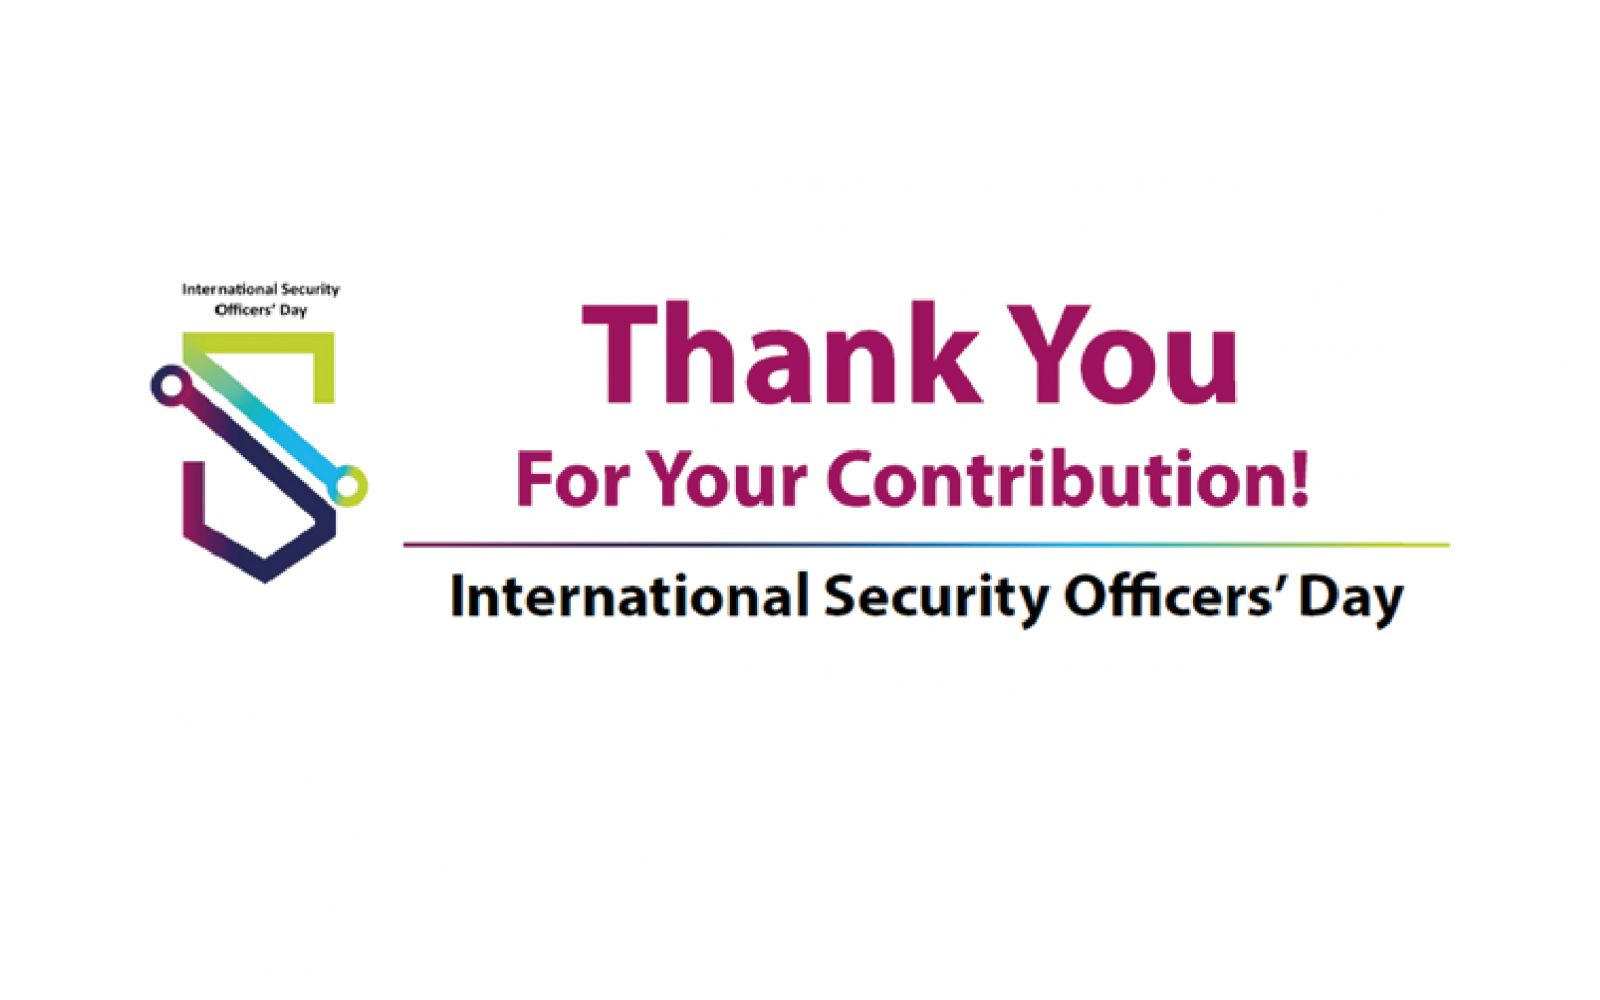 International Security Officers' Day